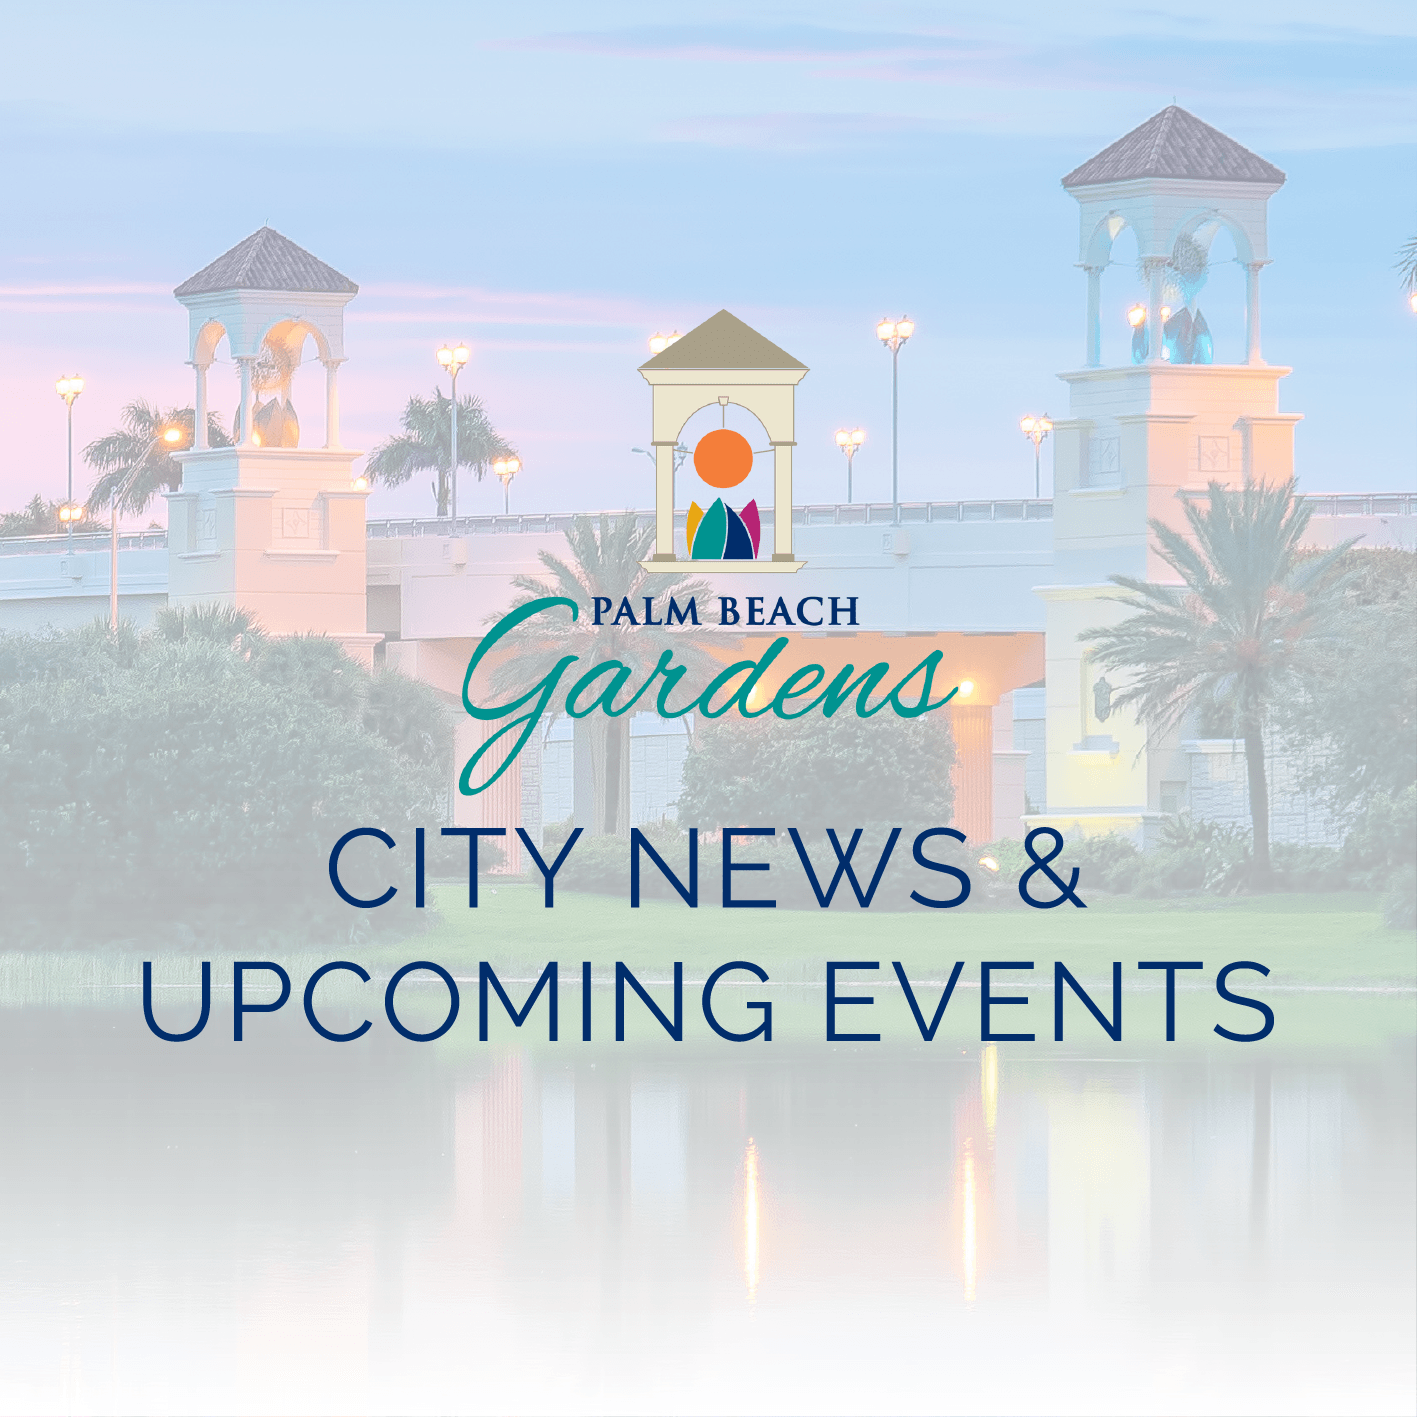 City News & Upcoming Events.